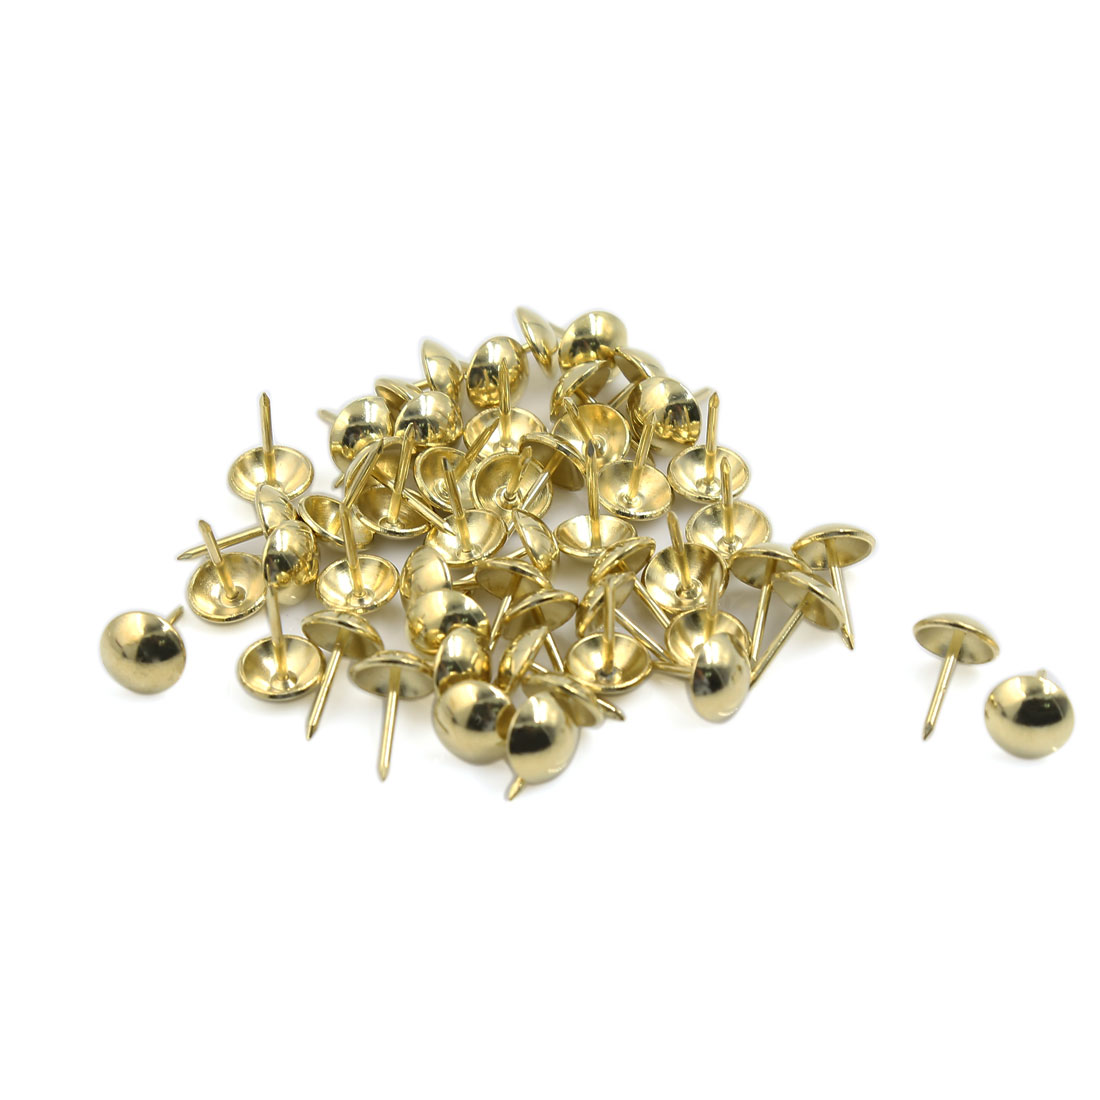 Board Corkboard Photo Thumb Tacks Drawing Pins Gold Tone 11mm Dia 50 Pcs